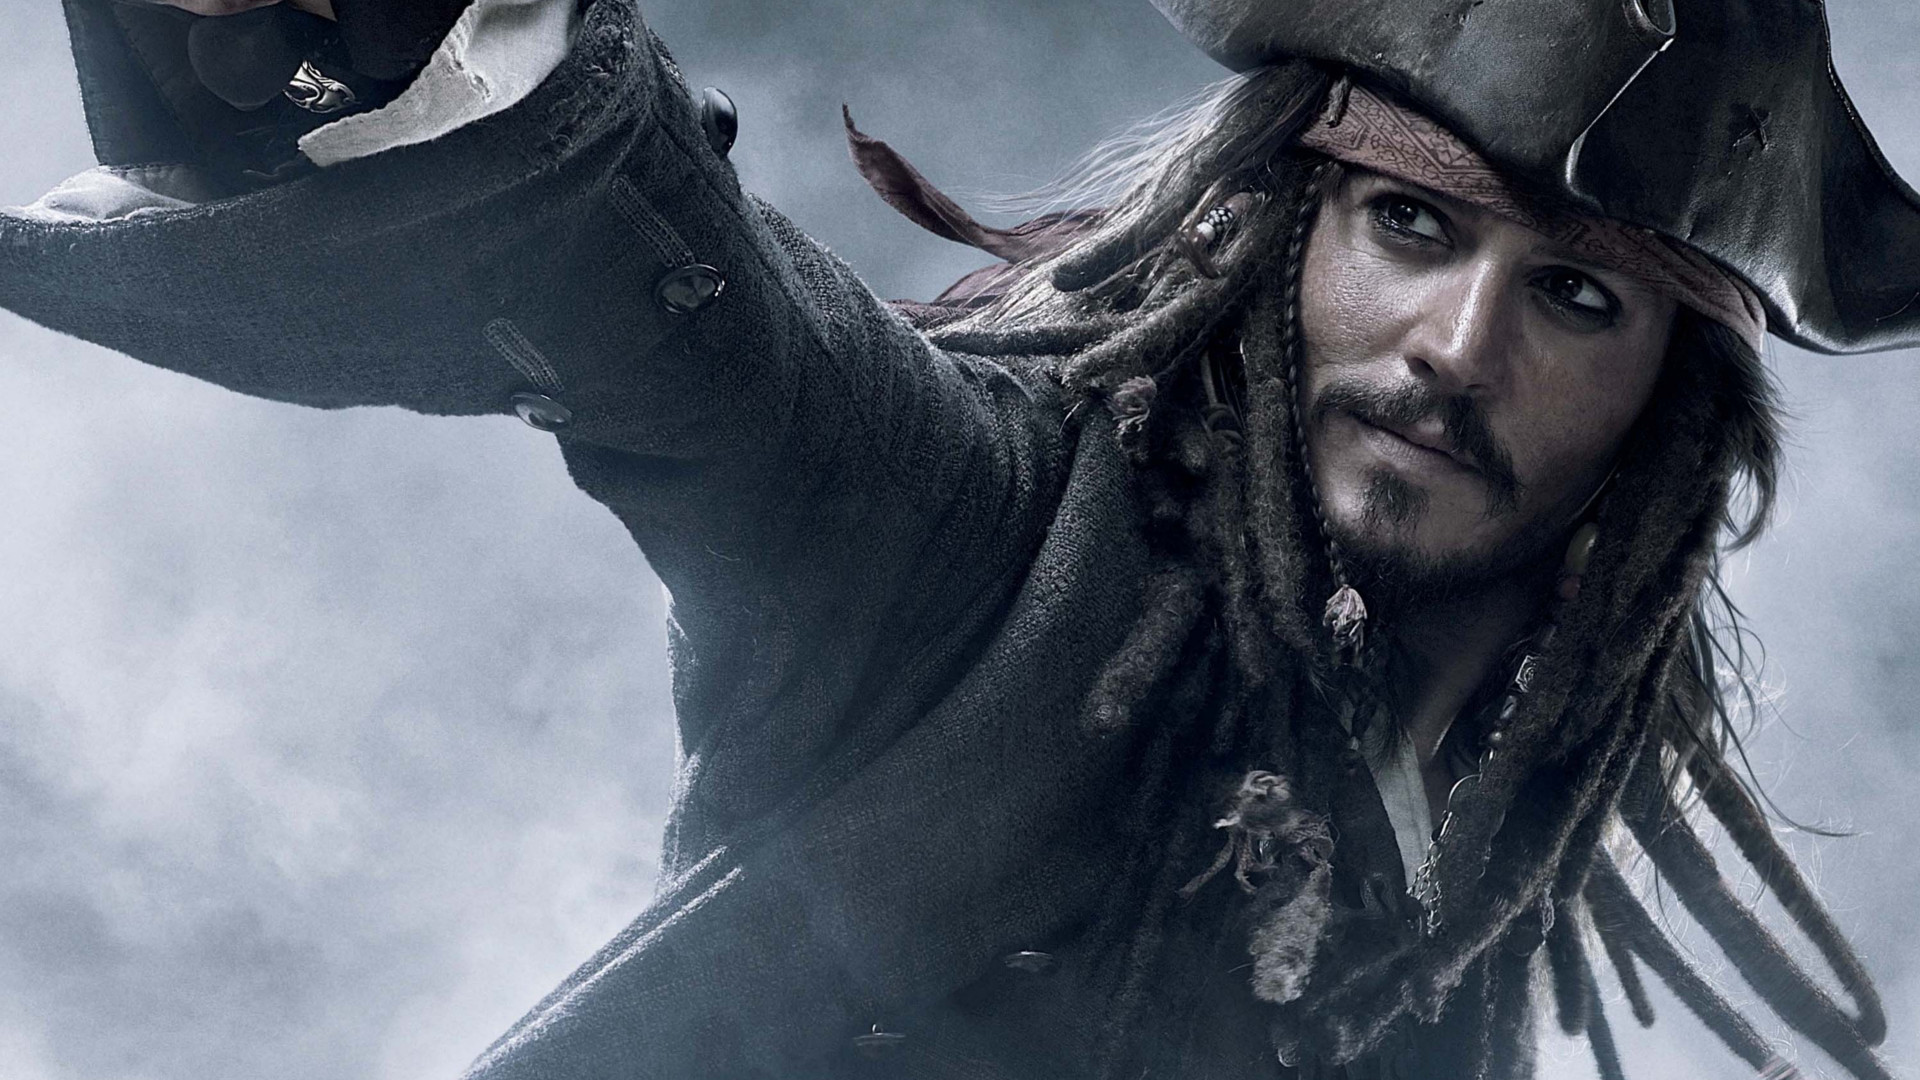 Pirates of the caribbean at world 39 s end hd wallpaper background image 1920x1080 id 794083 - Pirates of the caribbean images hd ...